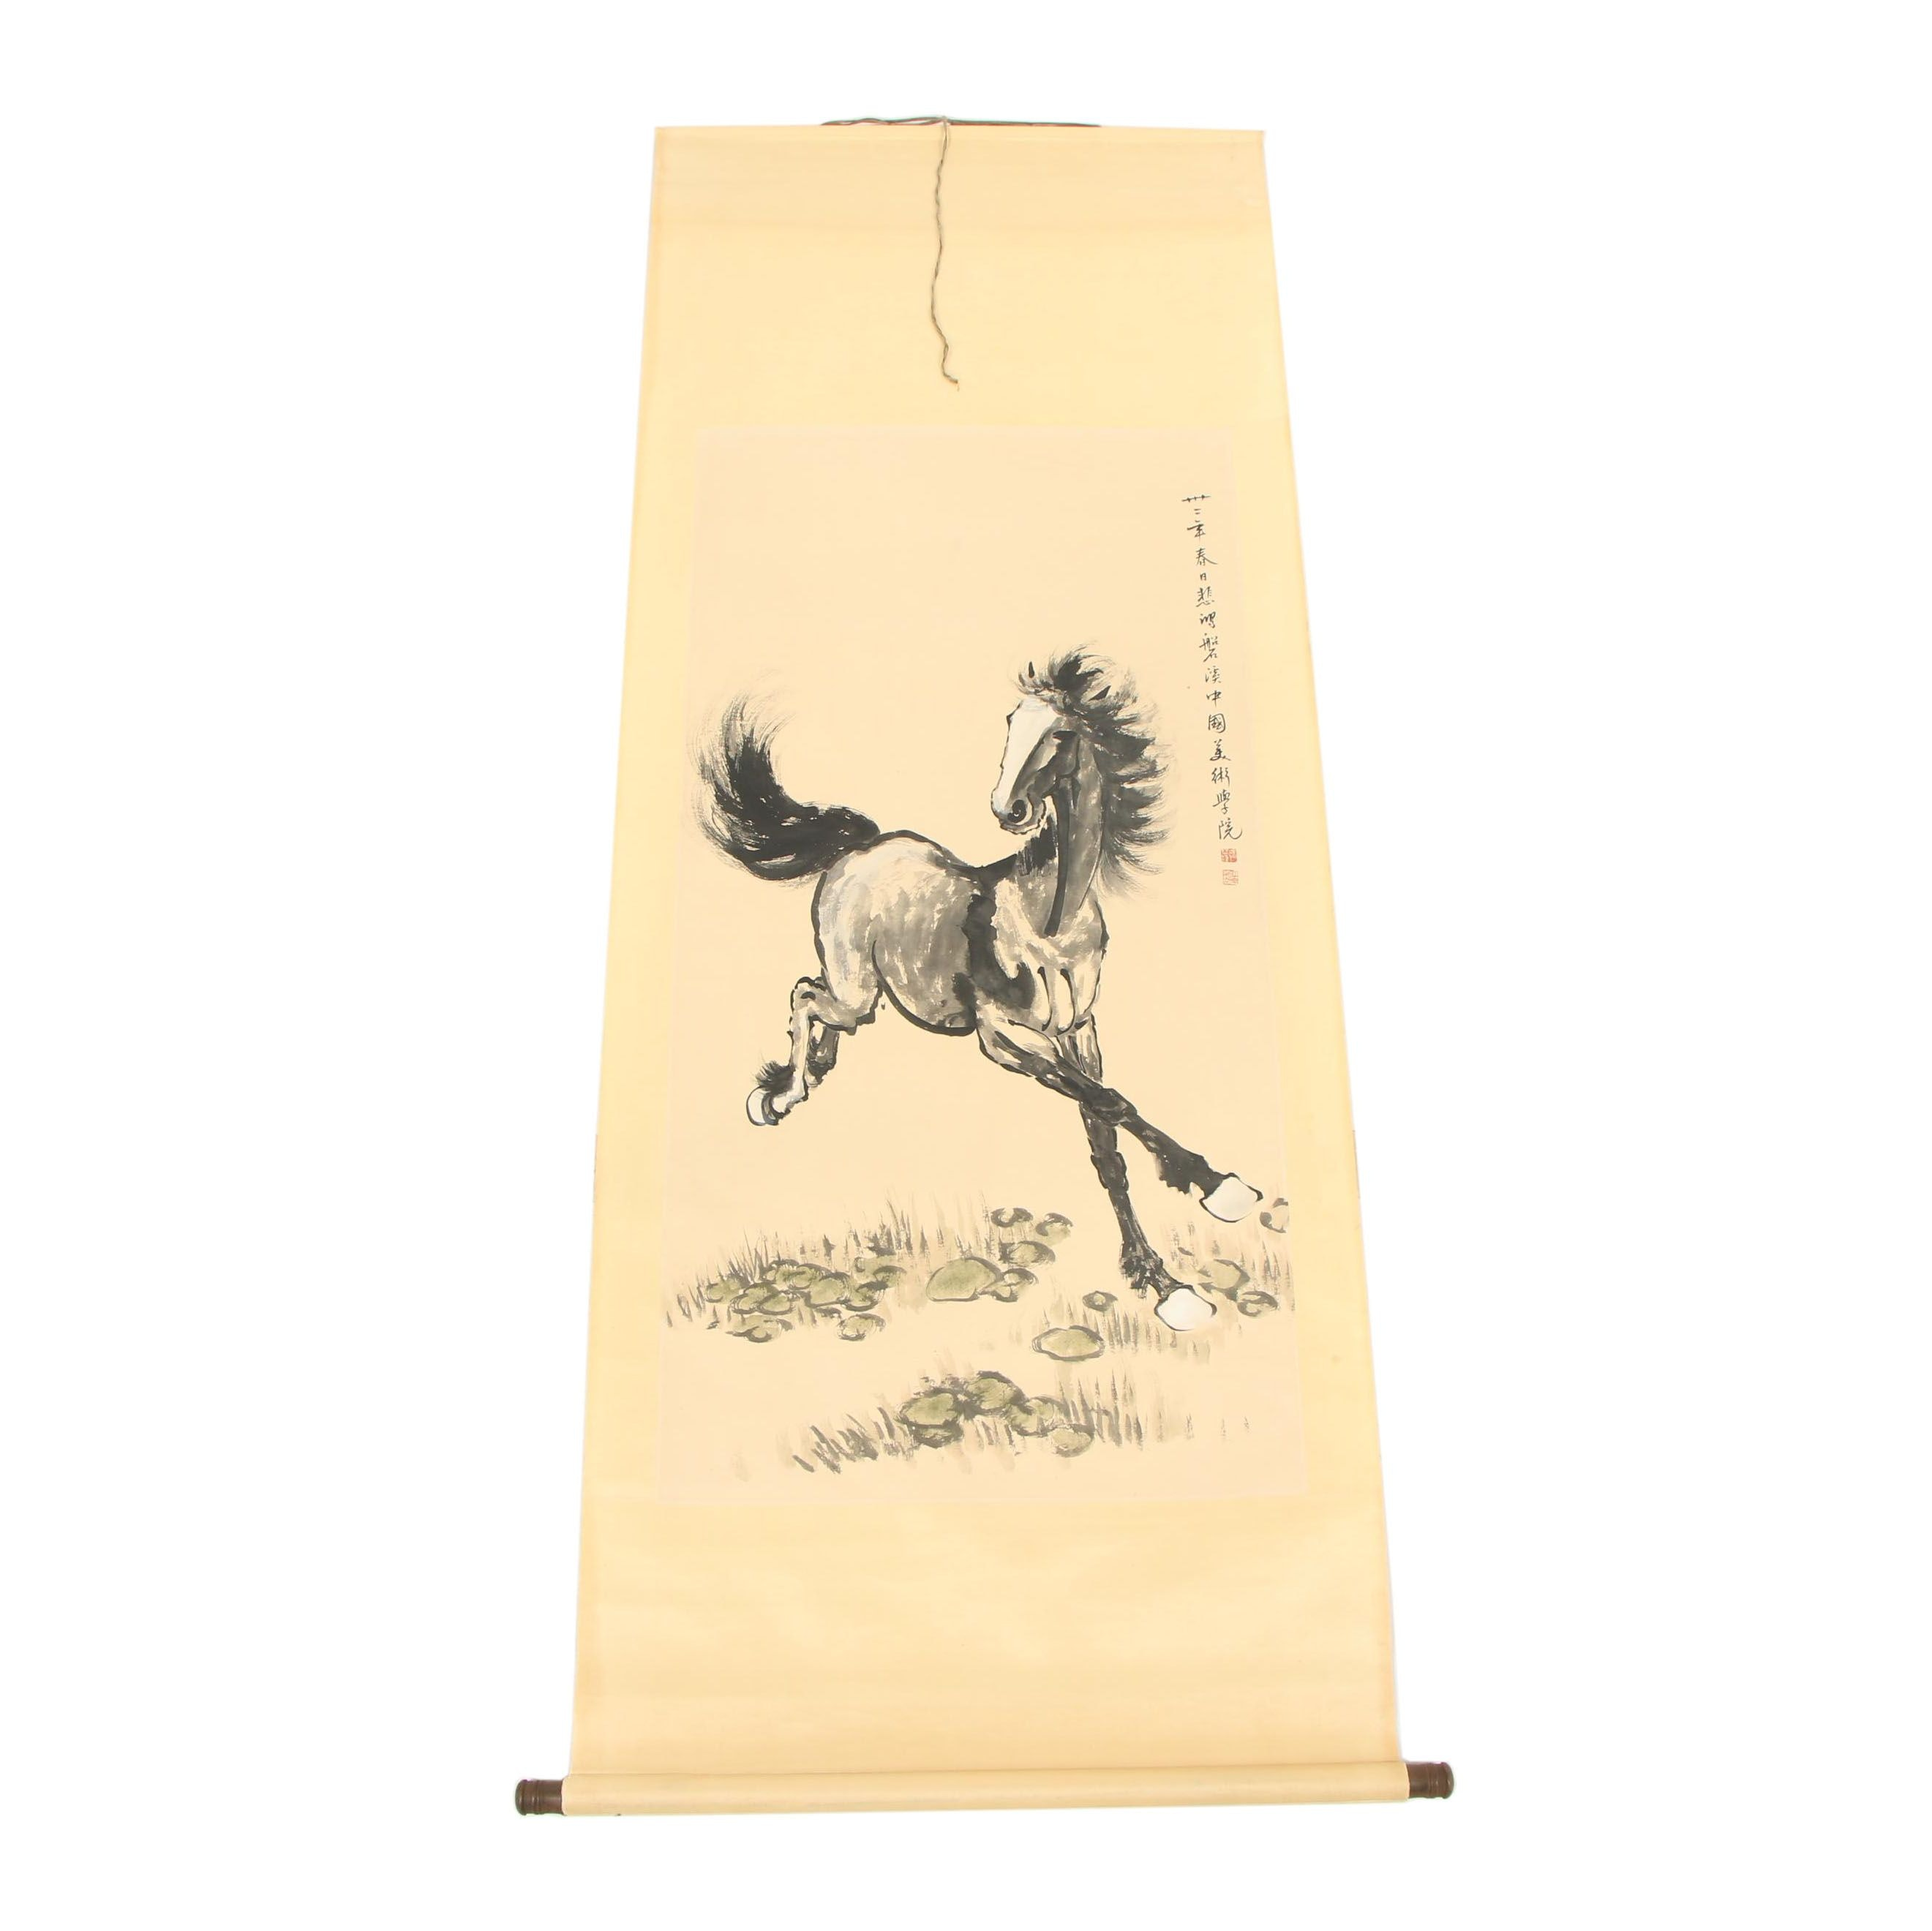 Copy Watercolor Hanging Scroll After Xu Beihong of Galloping Horse